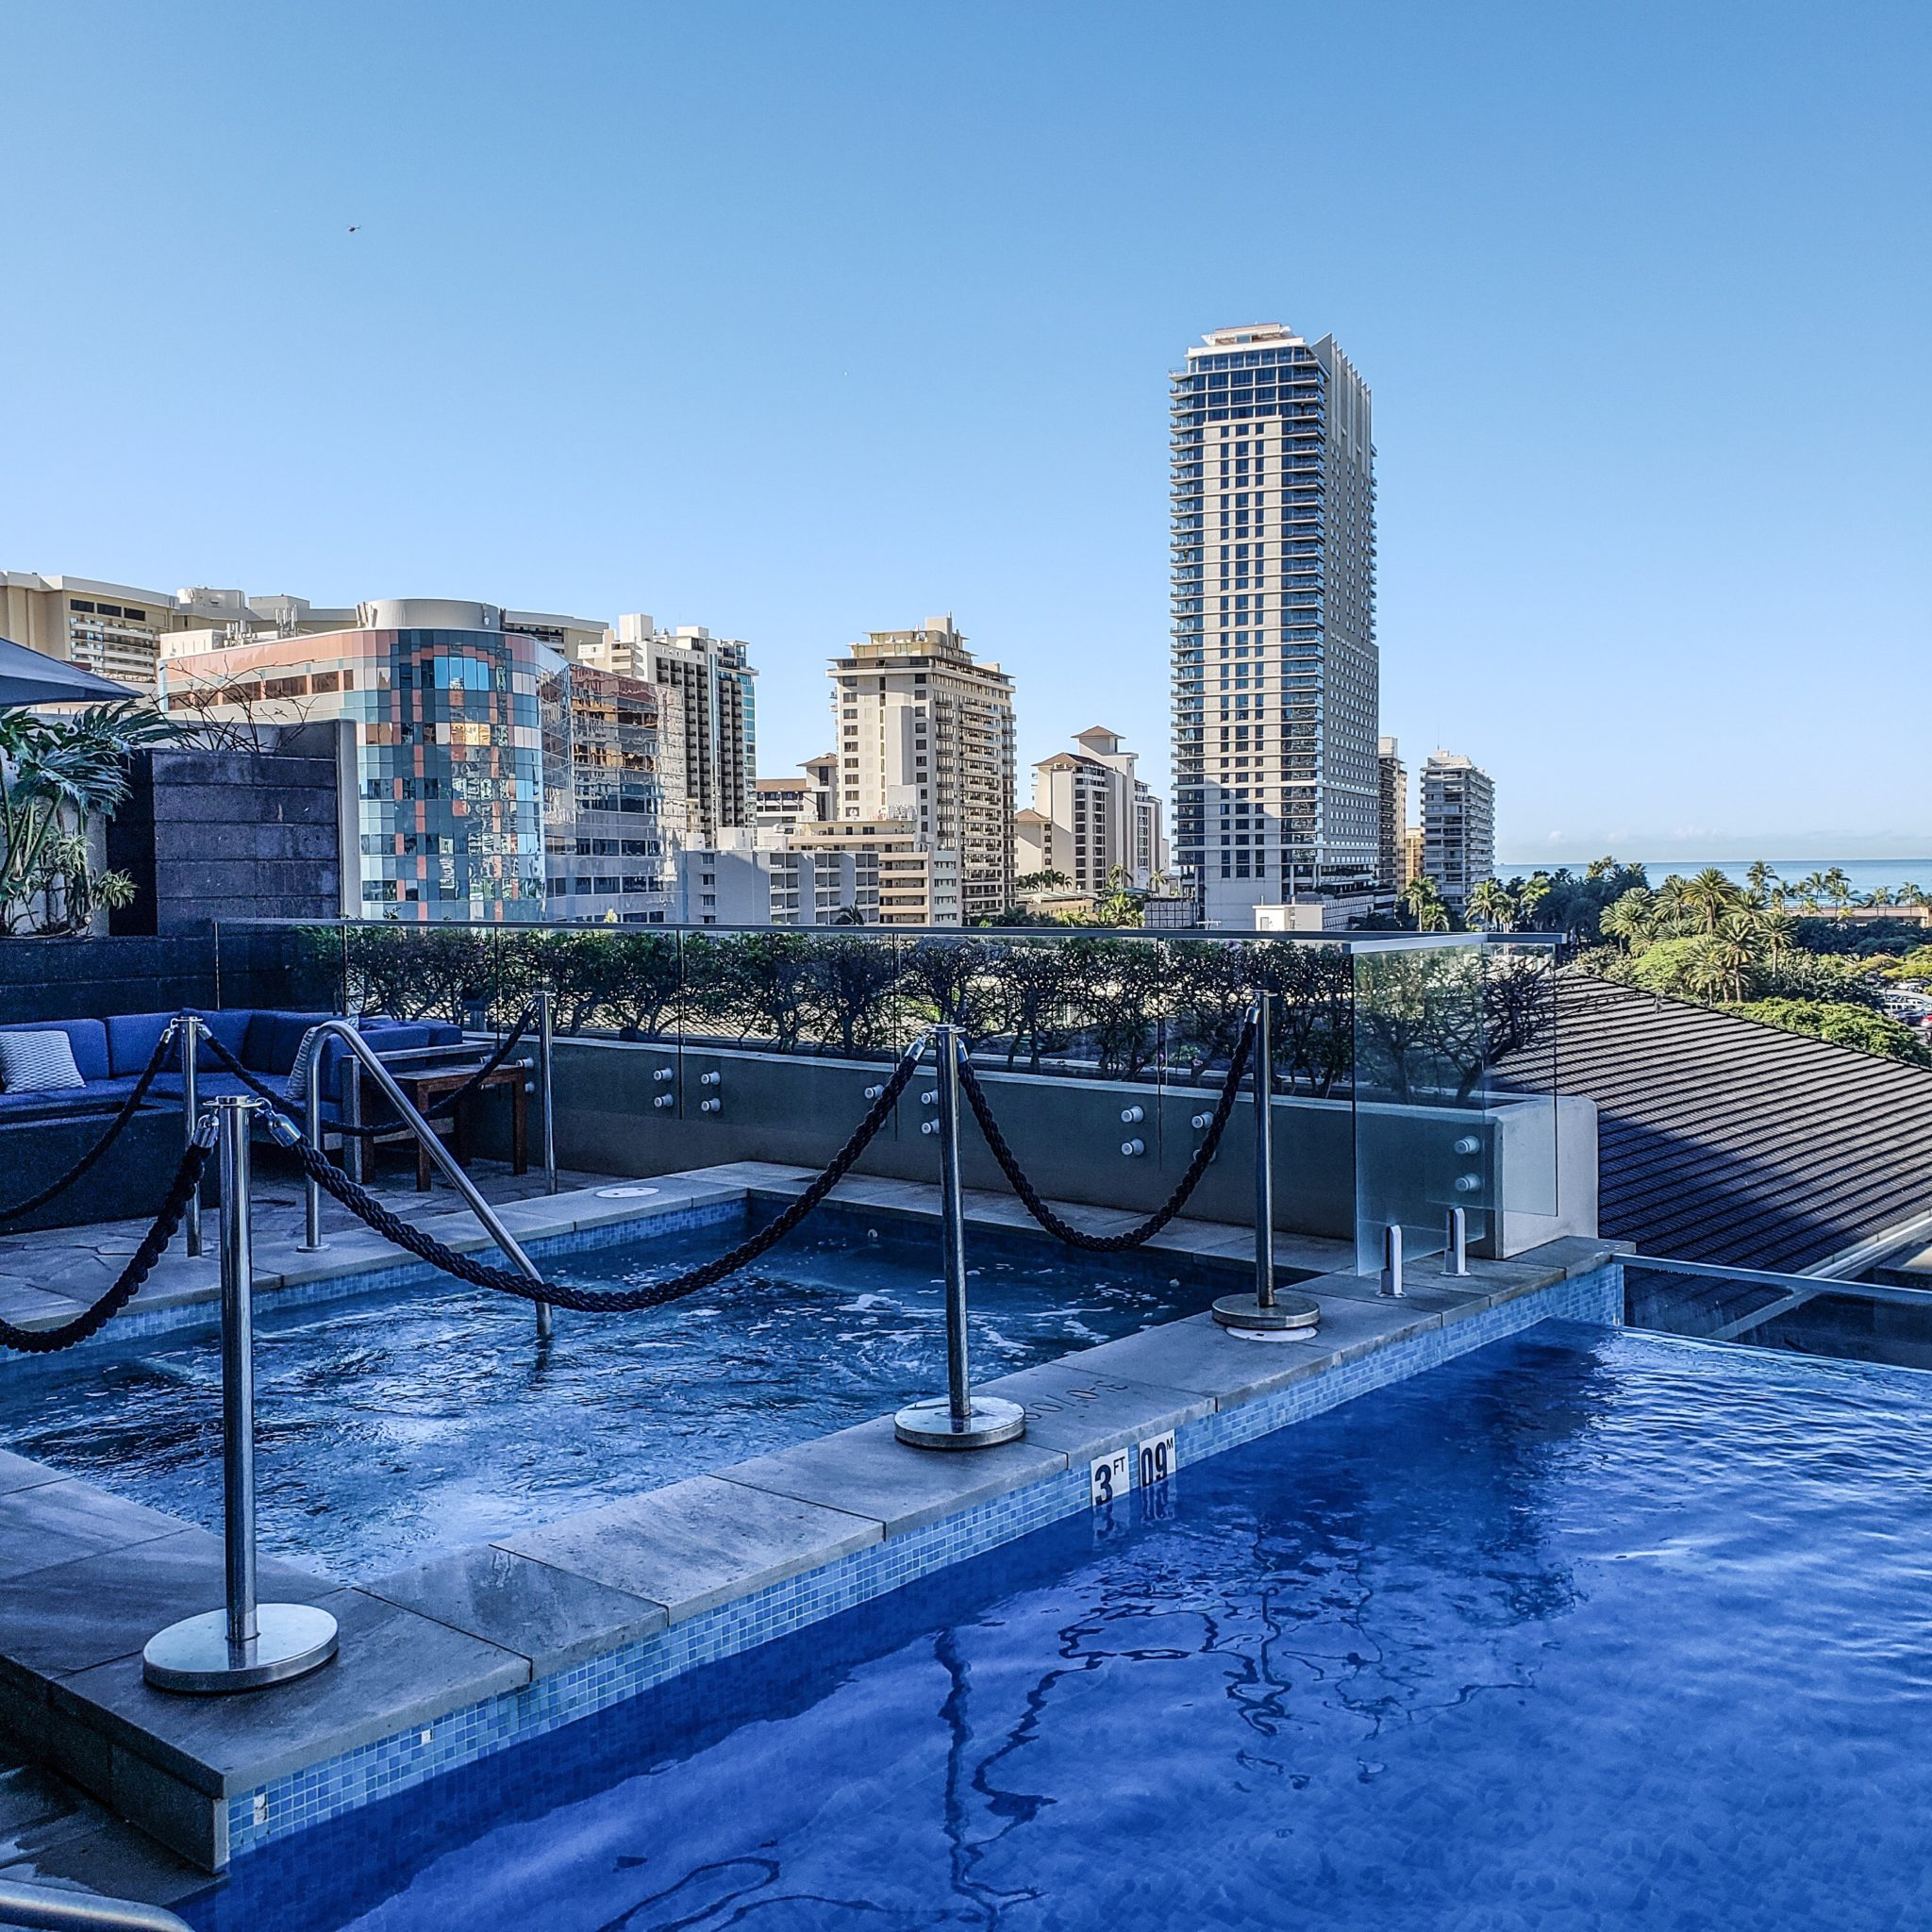 The Ritz Carlton Residences Waikiki Beach: A Heavenly Retreat